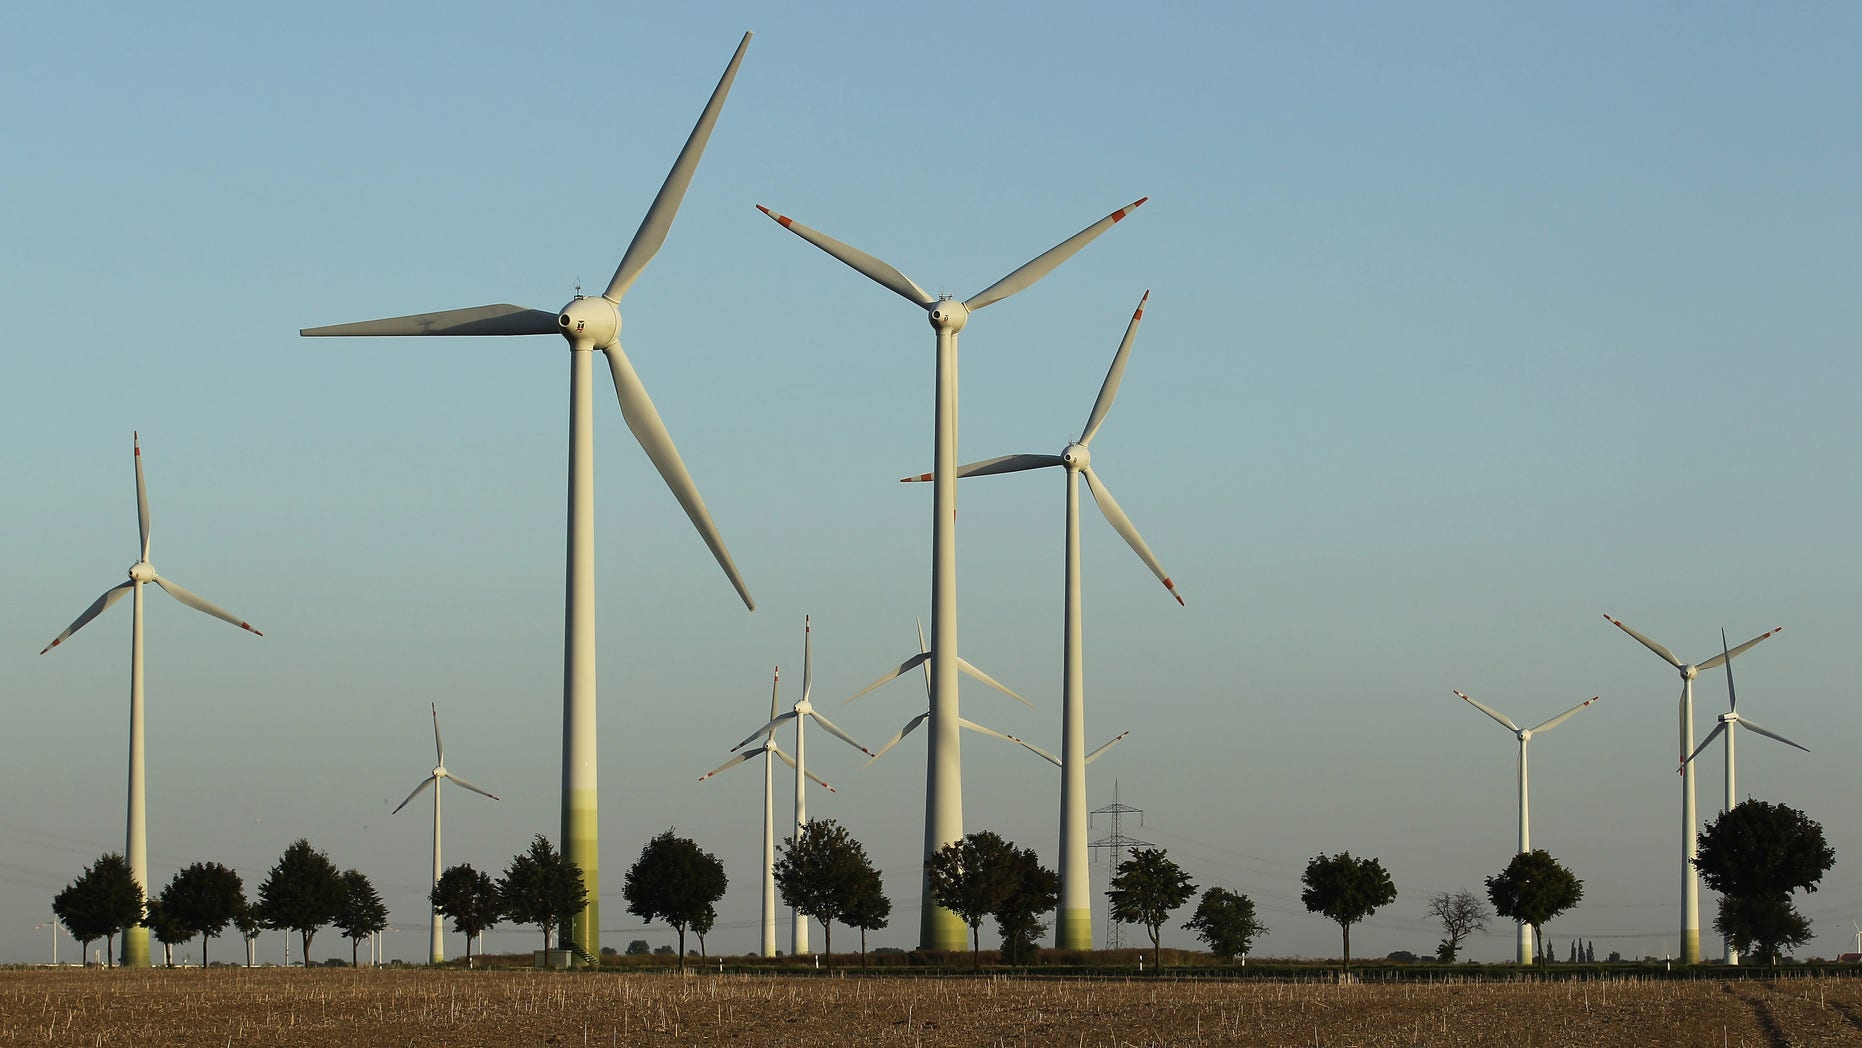 ROEDGEN, GERMANY - AUGUST 20:  Wind turbines spin to produce electricity on August 20, 2010 in Roedgen near Bitterfeld, Germany. Germany is investing heavily in renewable energy production, including wind power and solar, and is seeking to produce 30% of its electricity nationwide with renewables by 2020.  (Photo by Andreas Rentz/Getty Images)